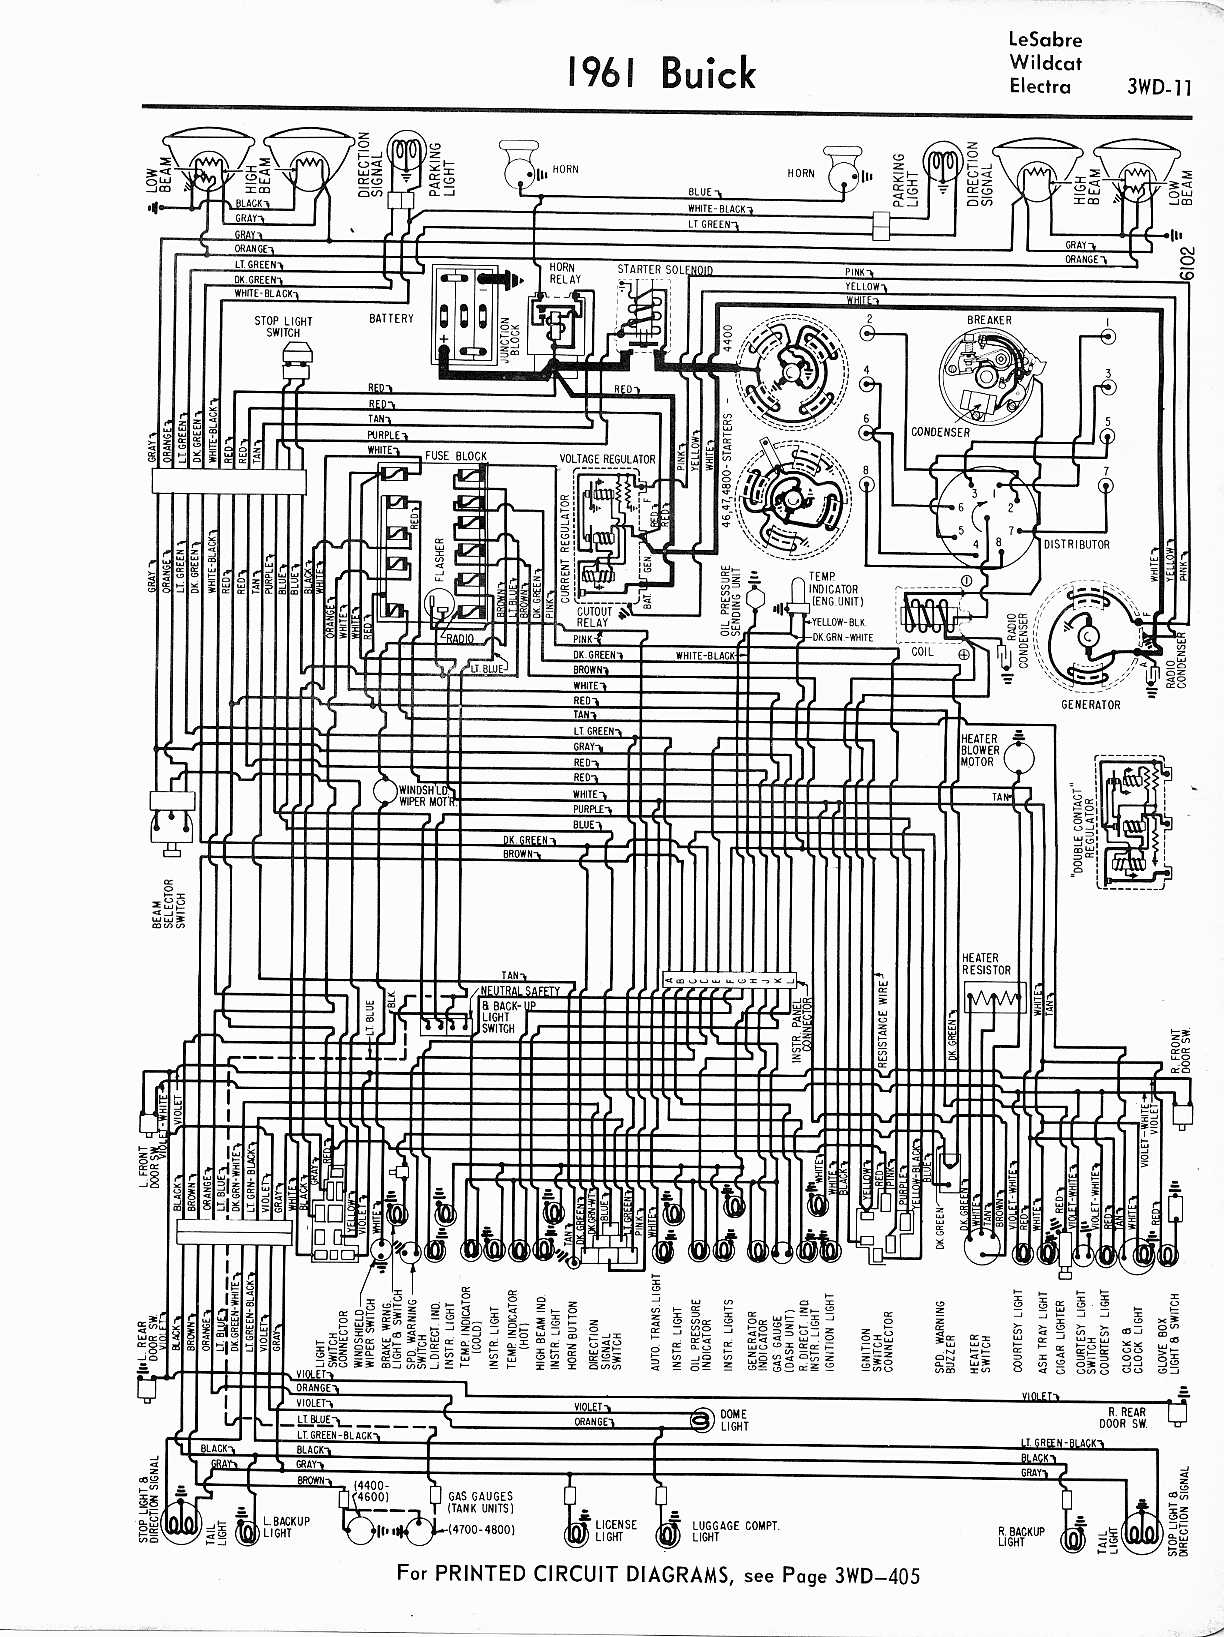 MWireBuic65_3WD 011 buick wiring diagrams 1957 1965 2002 buick century wiring diagram at gsmx.co